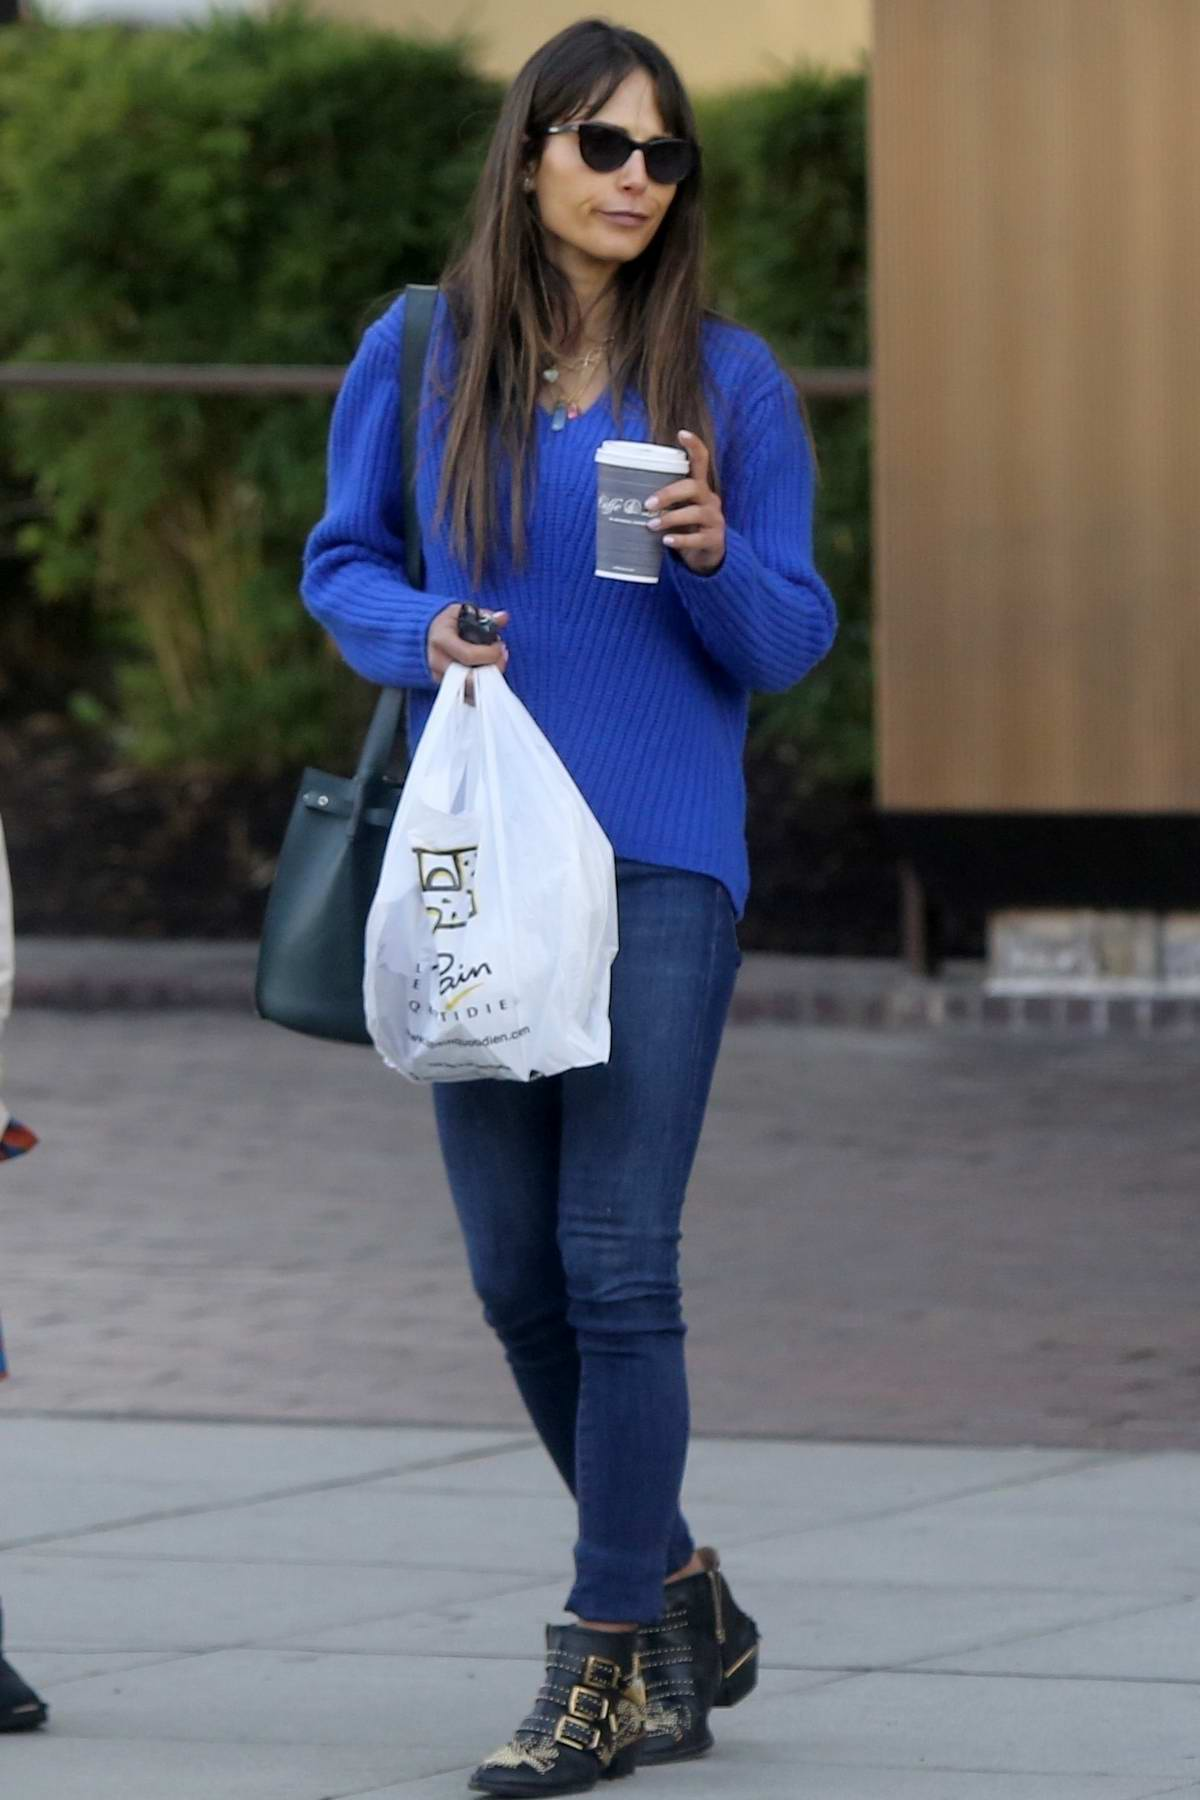 Jordana Brewster meets up with her mother for lunch at Le Pain Quotidien in Beverly Hills, California